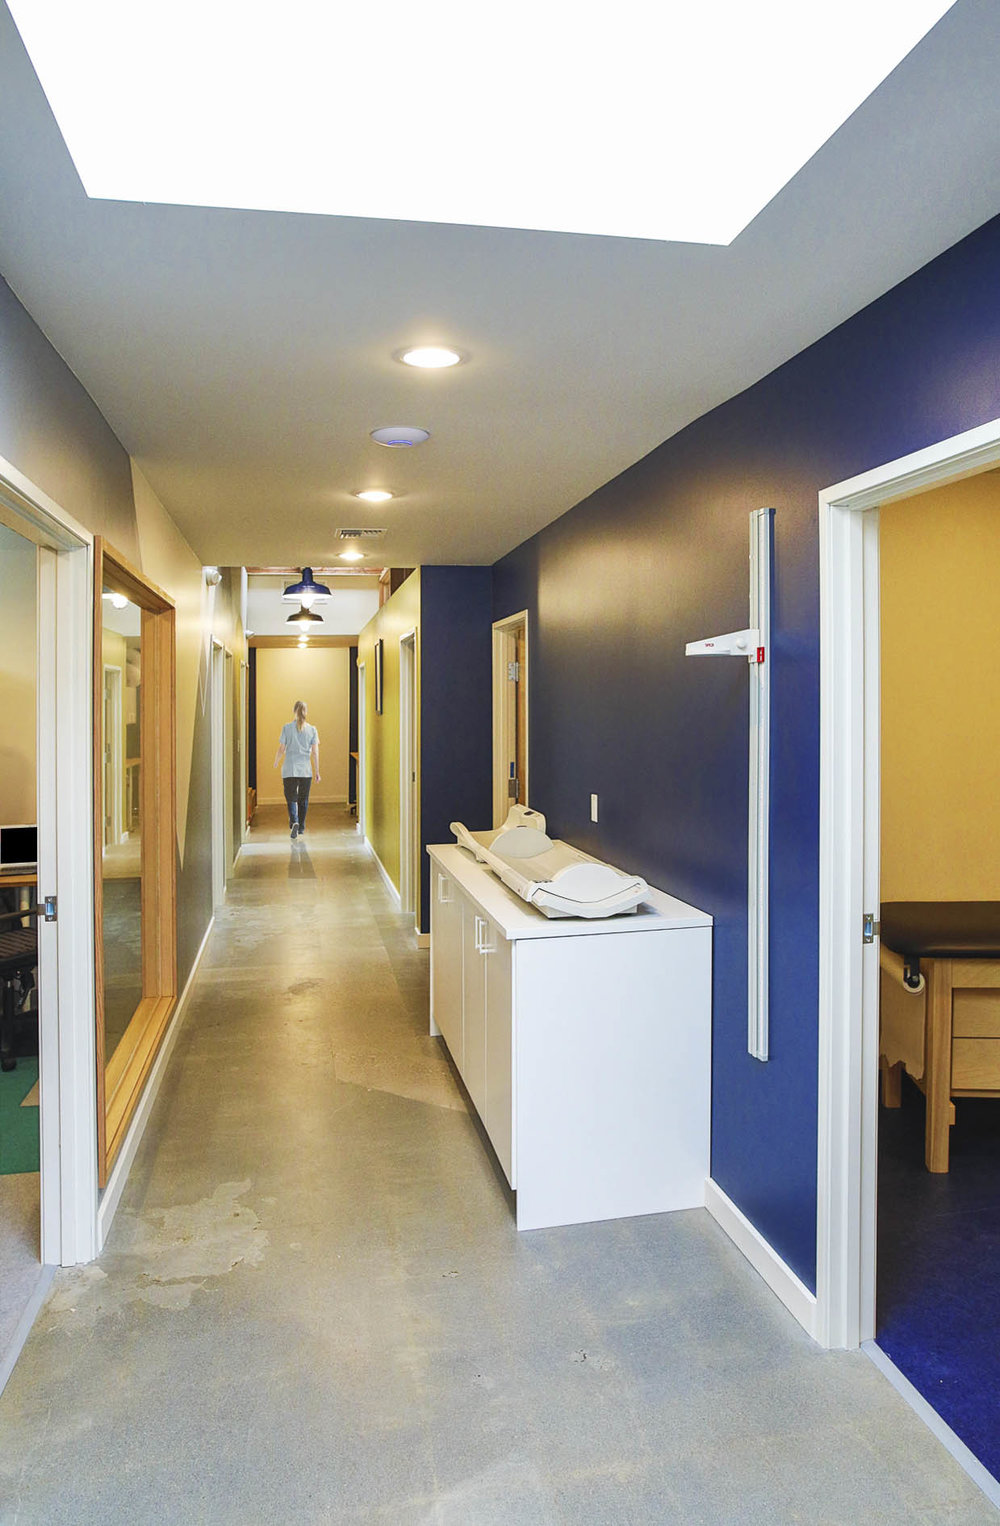 The central corridor widens where functions like charting or the weighing and measuring station occur. Interior glazing provides visual connections with the doctor and staff offices.